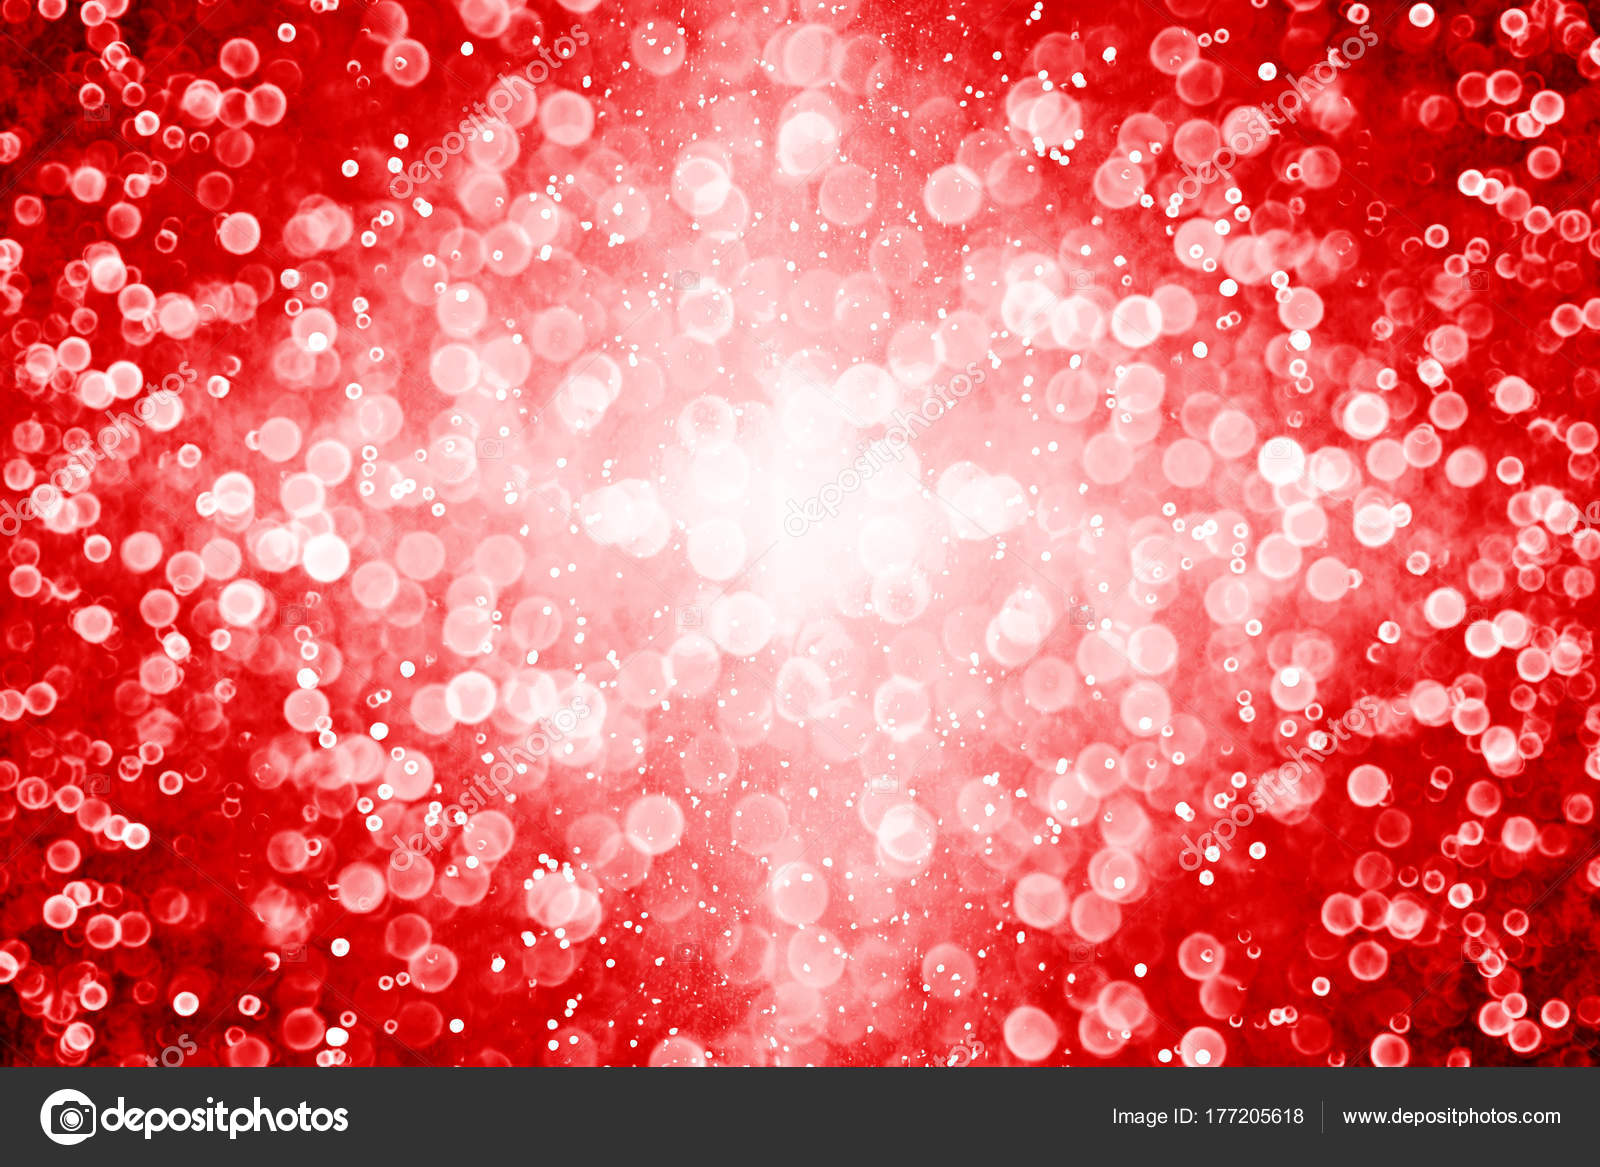 red glitter background for birthday christmas new year valentine stock photo